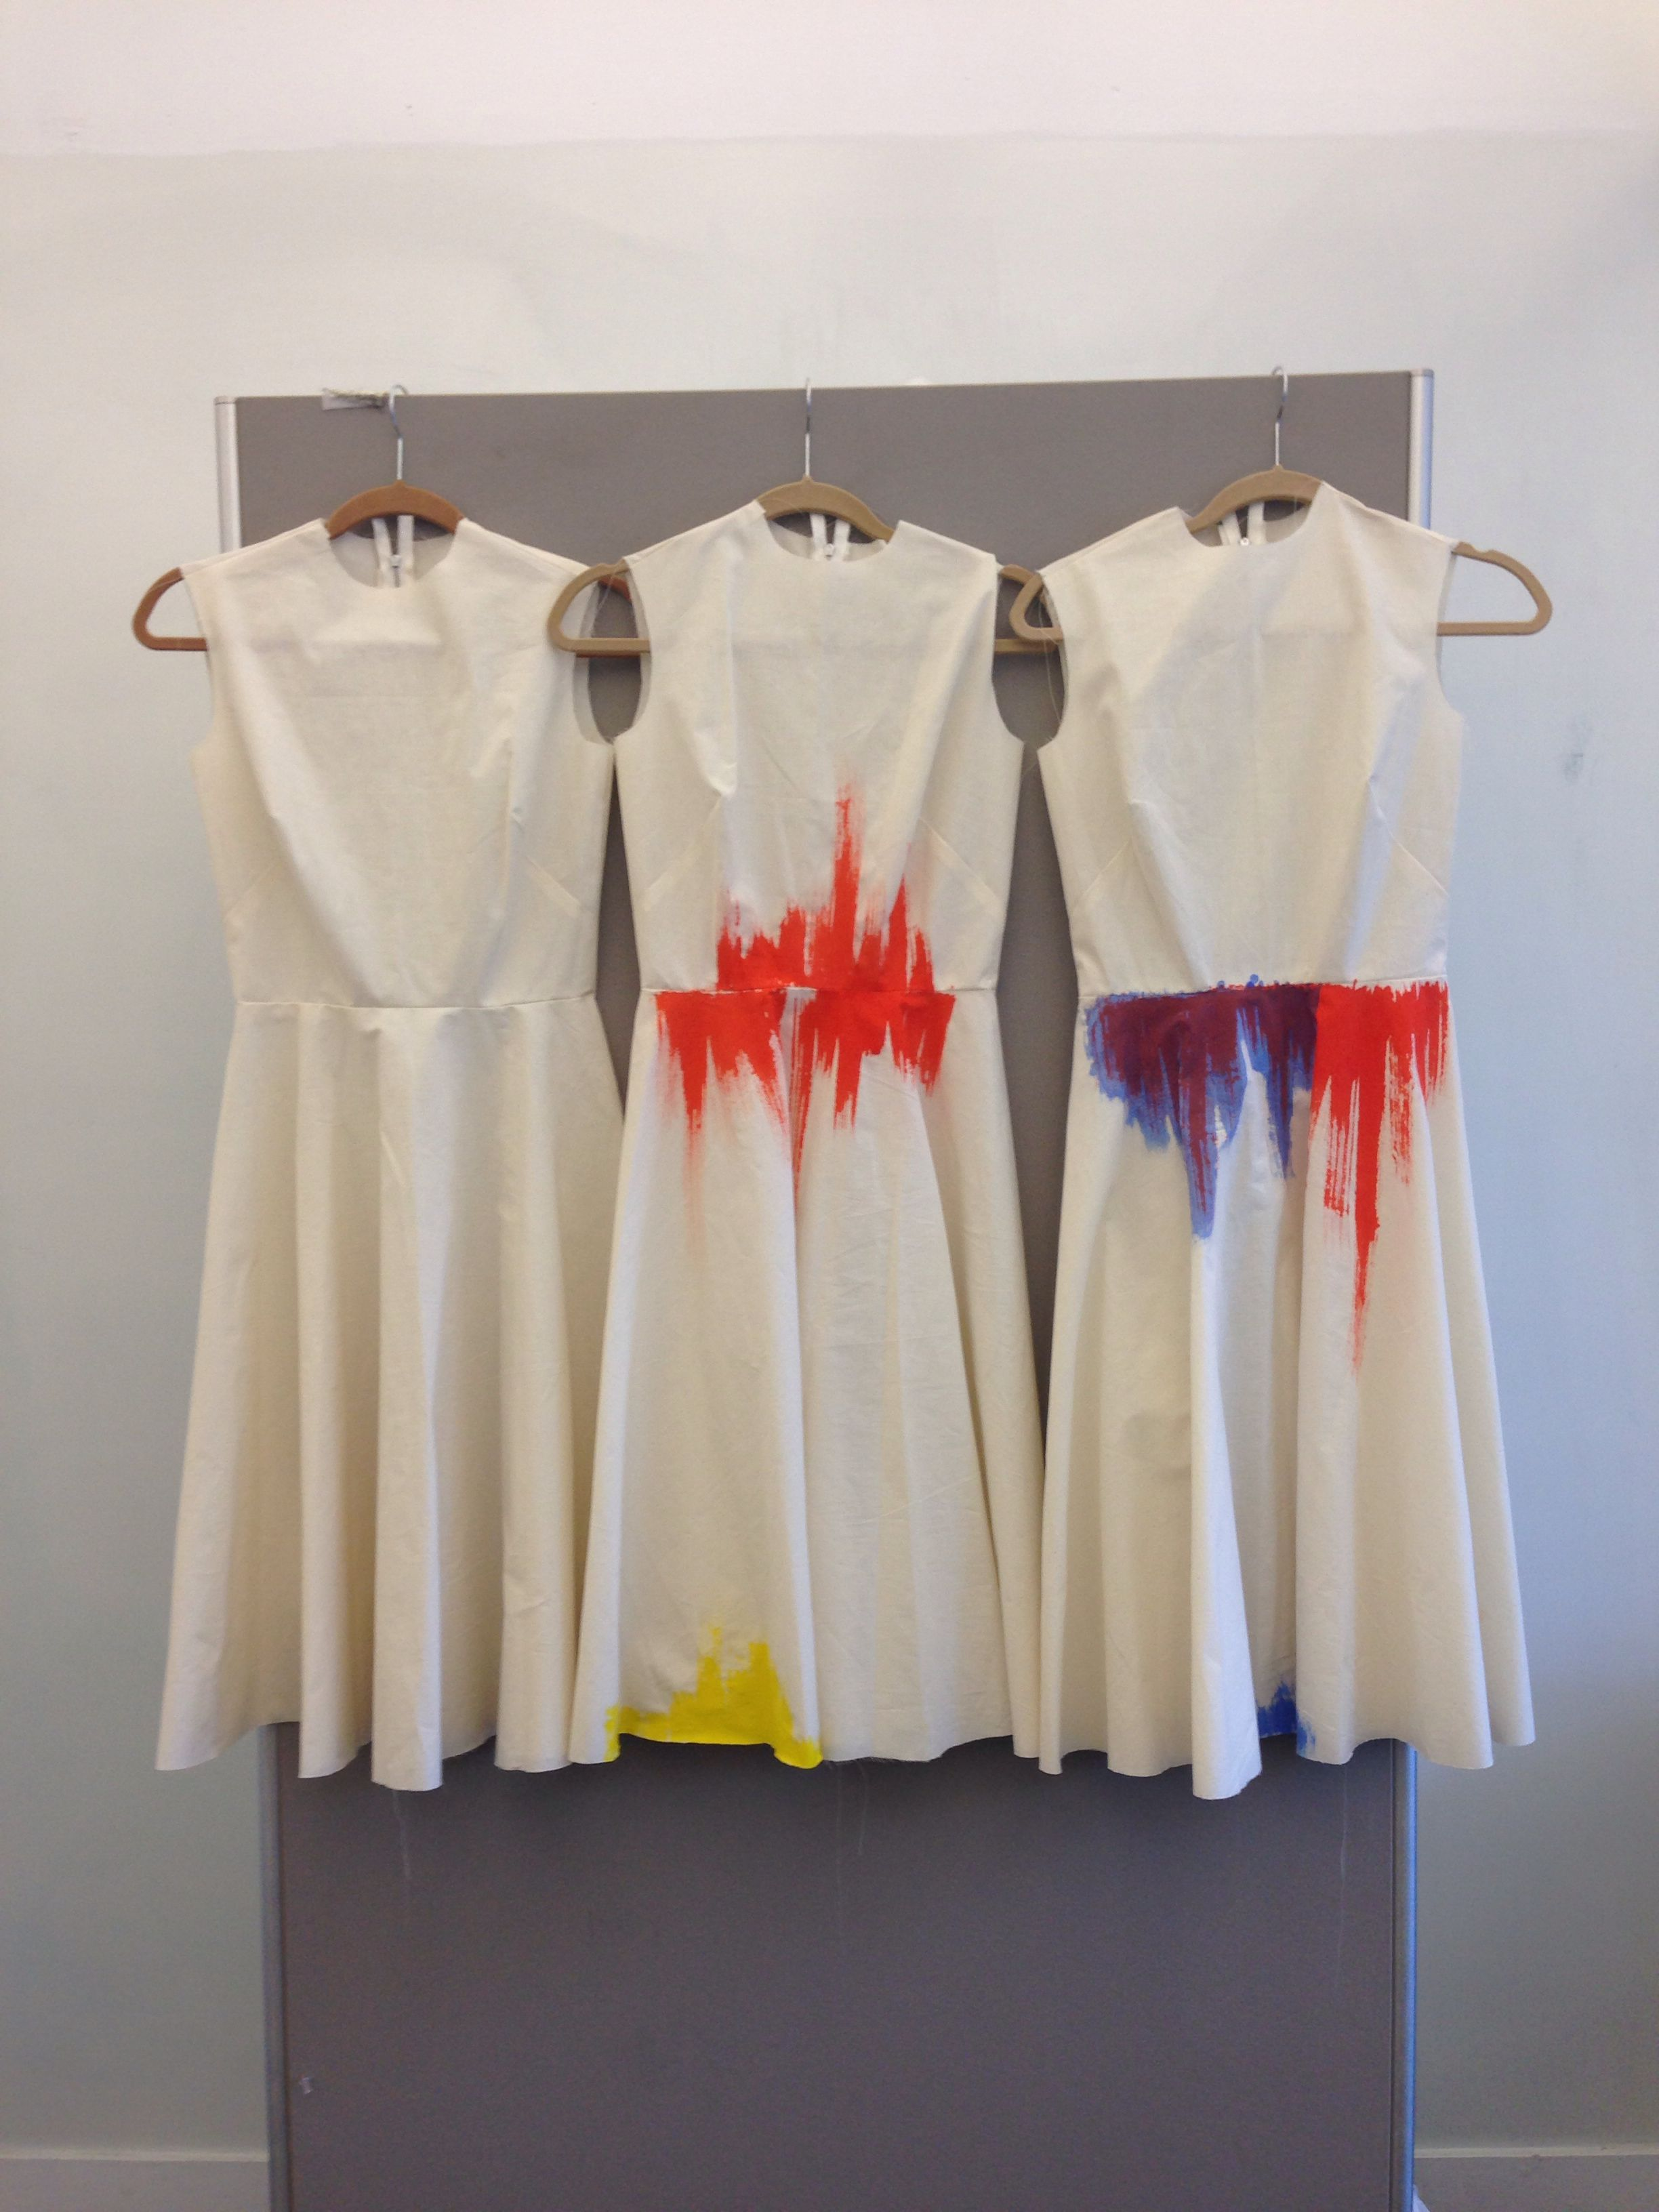 Muslin dresses with thermochromic inks by Aneta Genova